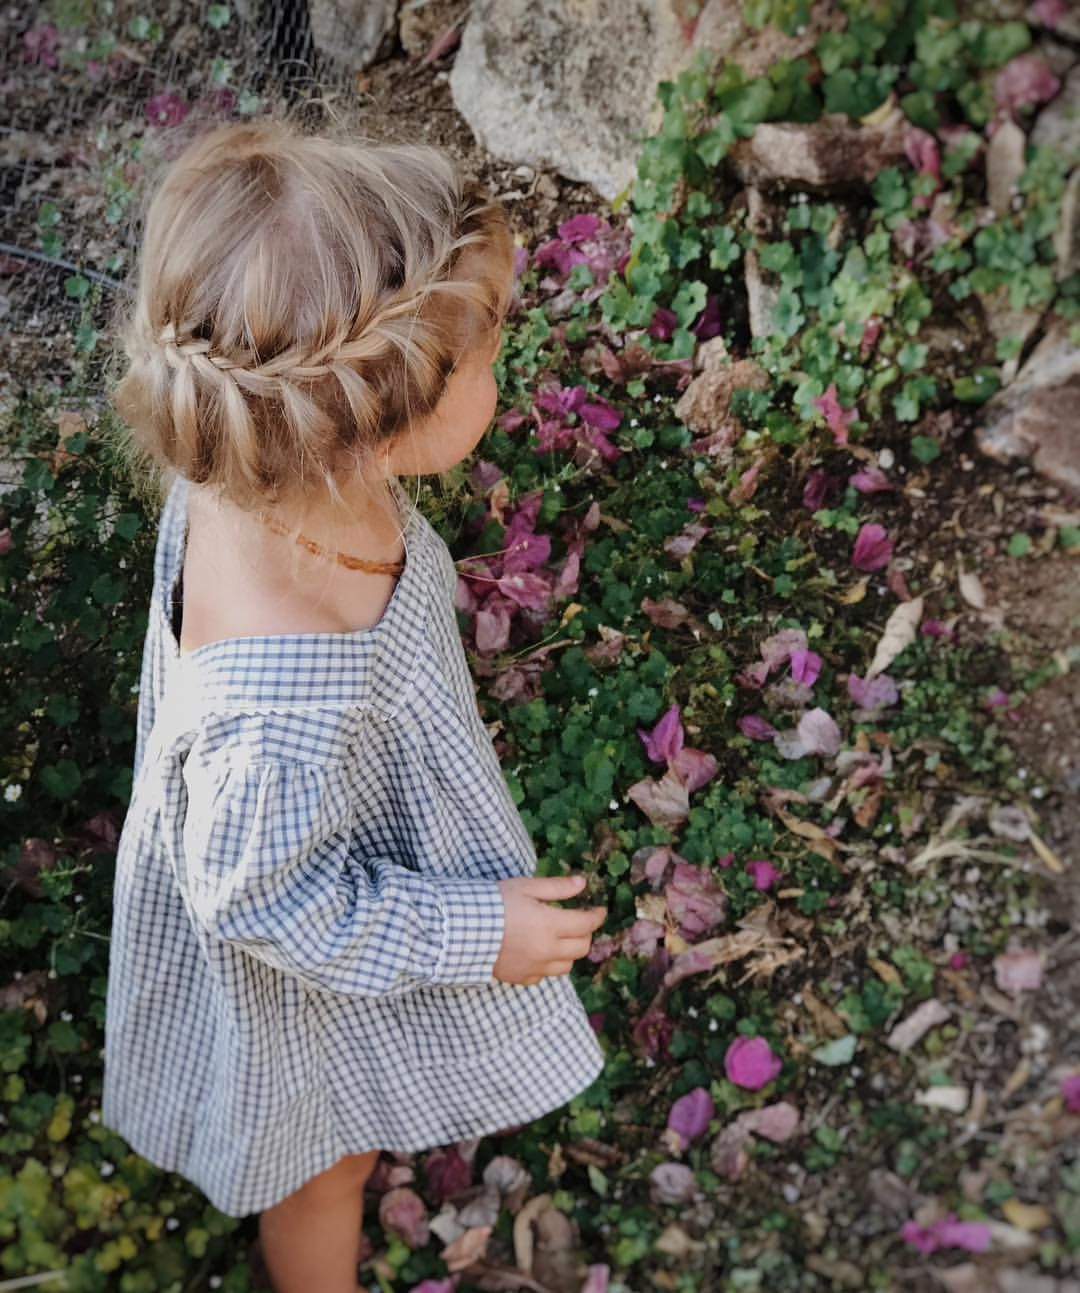 fddc01fee13b FOLLOW ME ON INSTA: @elle.martinez_ | Oh baby | Kids outfits ...